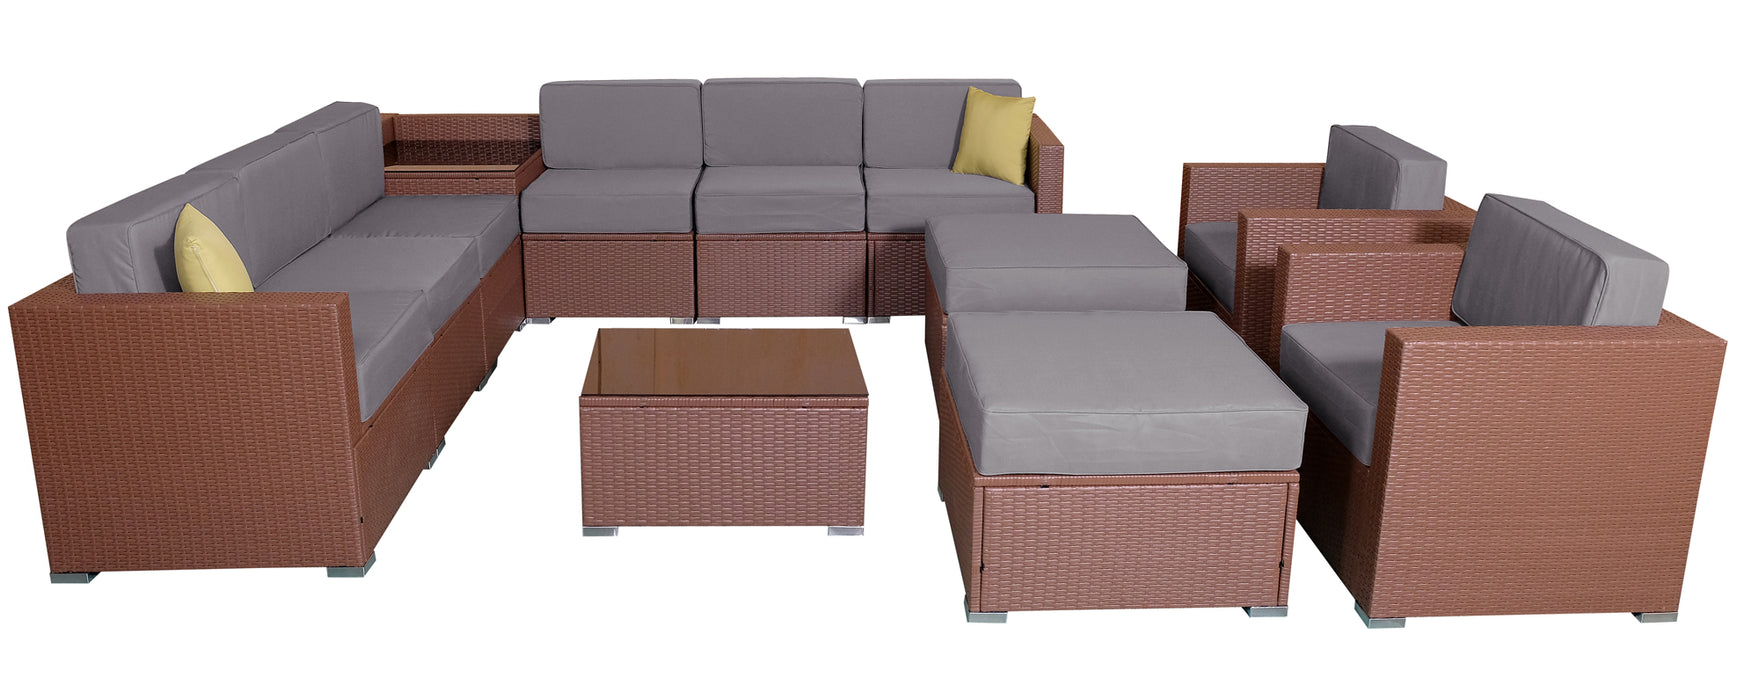 MCombo Patio furniture sectional Sets Wicker Rattan Couch Sofa Chair Luxury Big Size 13 PC